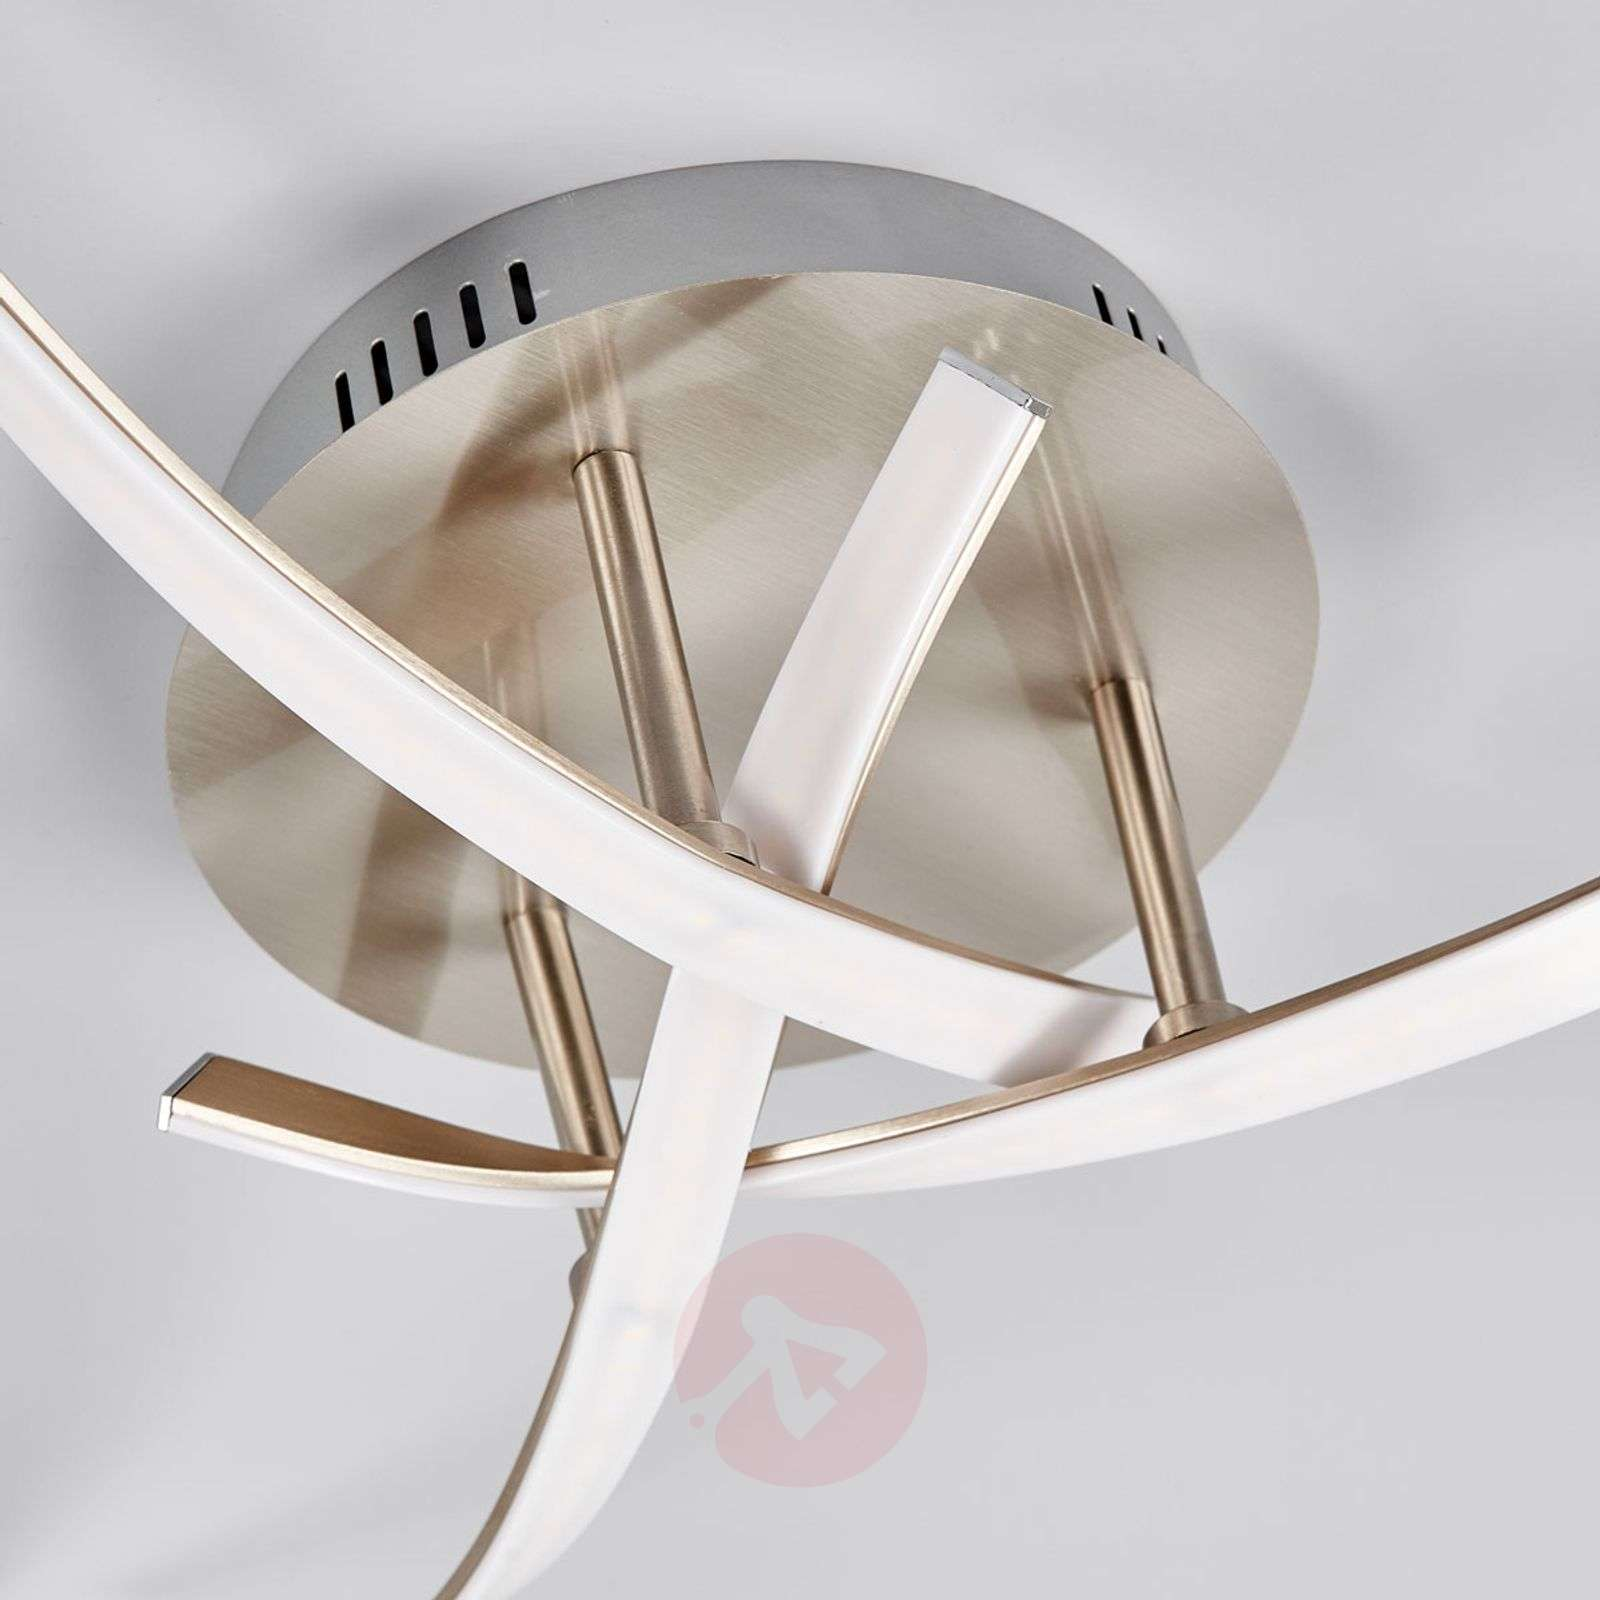 Milane LED ceiling light, three dimming levels-9985056-02